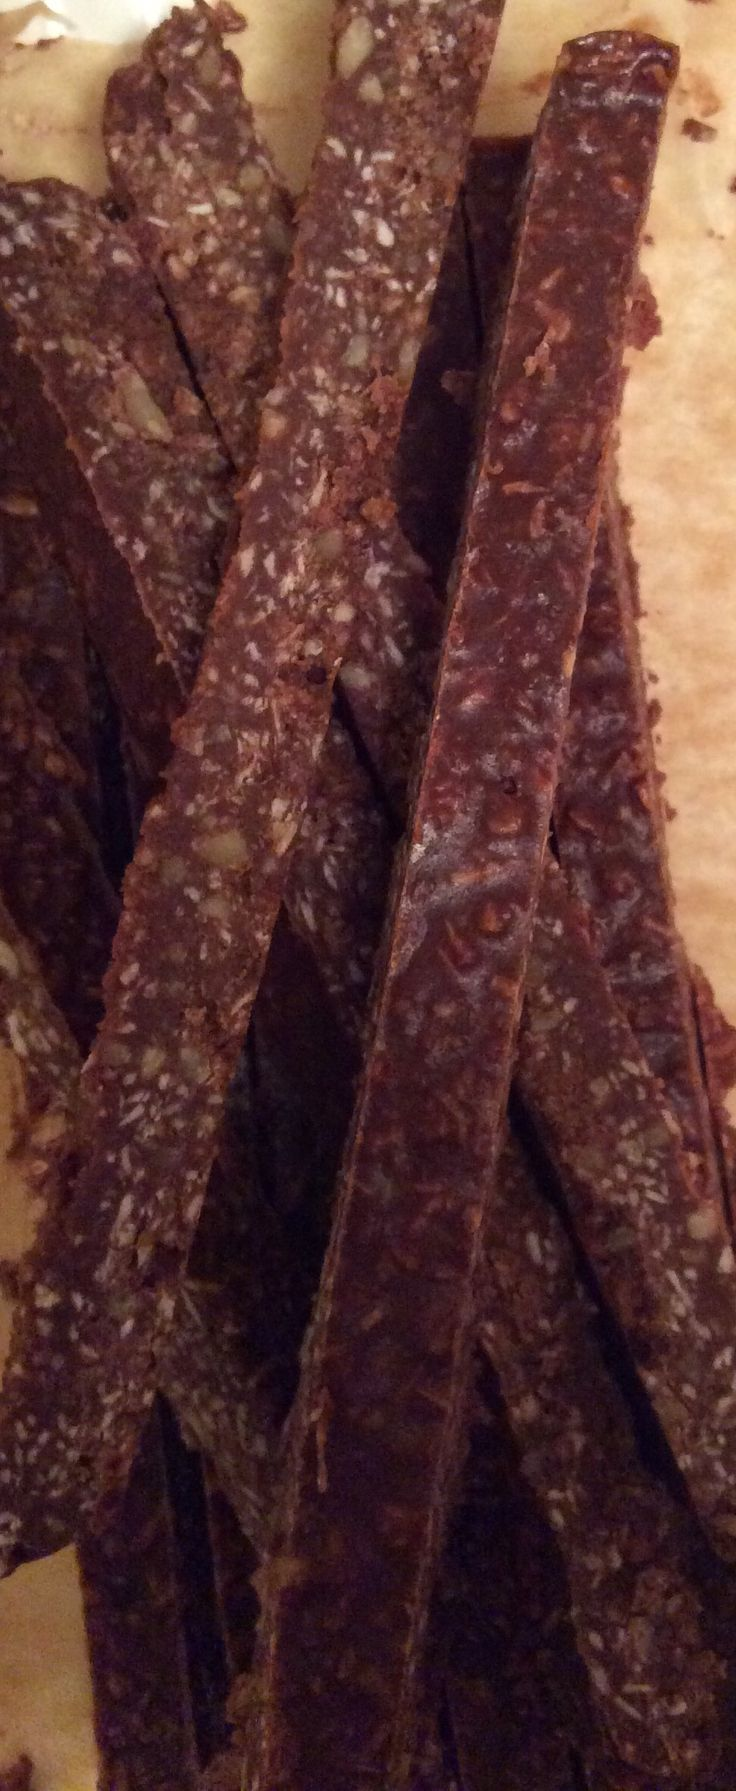 Peppermint Chocolate Sticks (paleo, gluten, dairy, refined sugar free) - Living Healthy With Chocolate